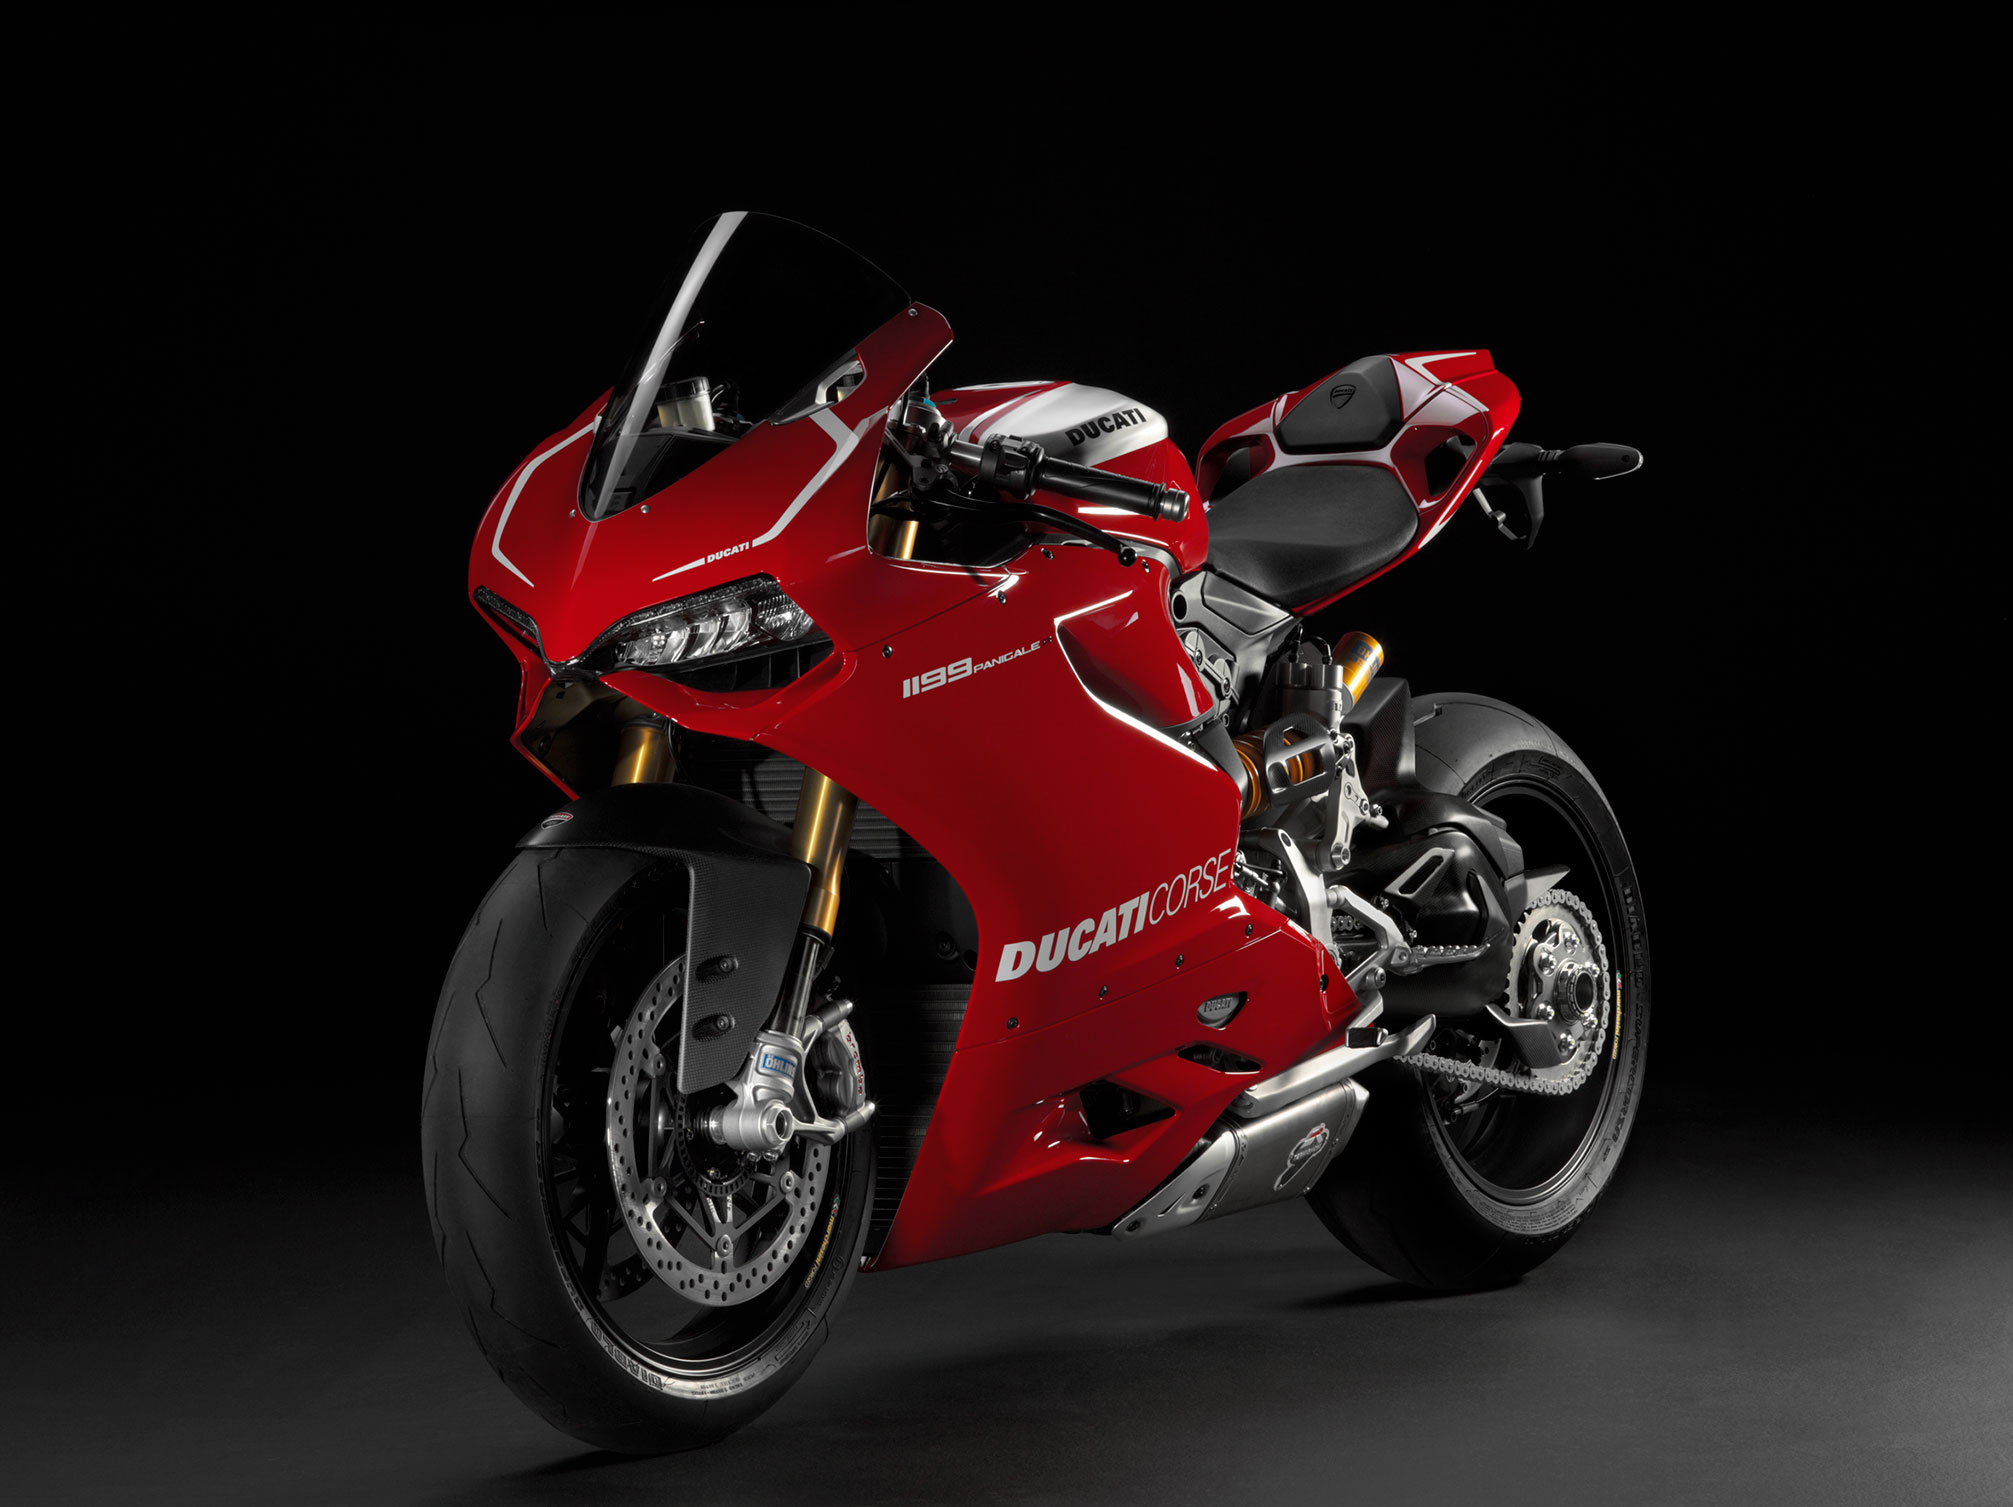 Harley manages to fit all the complex electronics and emissions gear - 2013 Ducati Superbike 1199 Panigale R